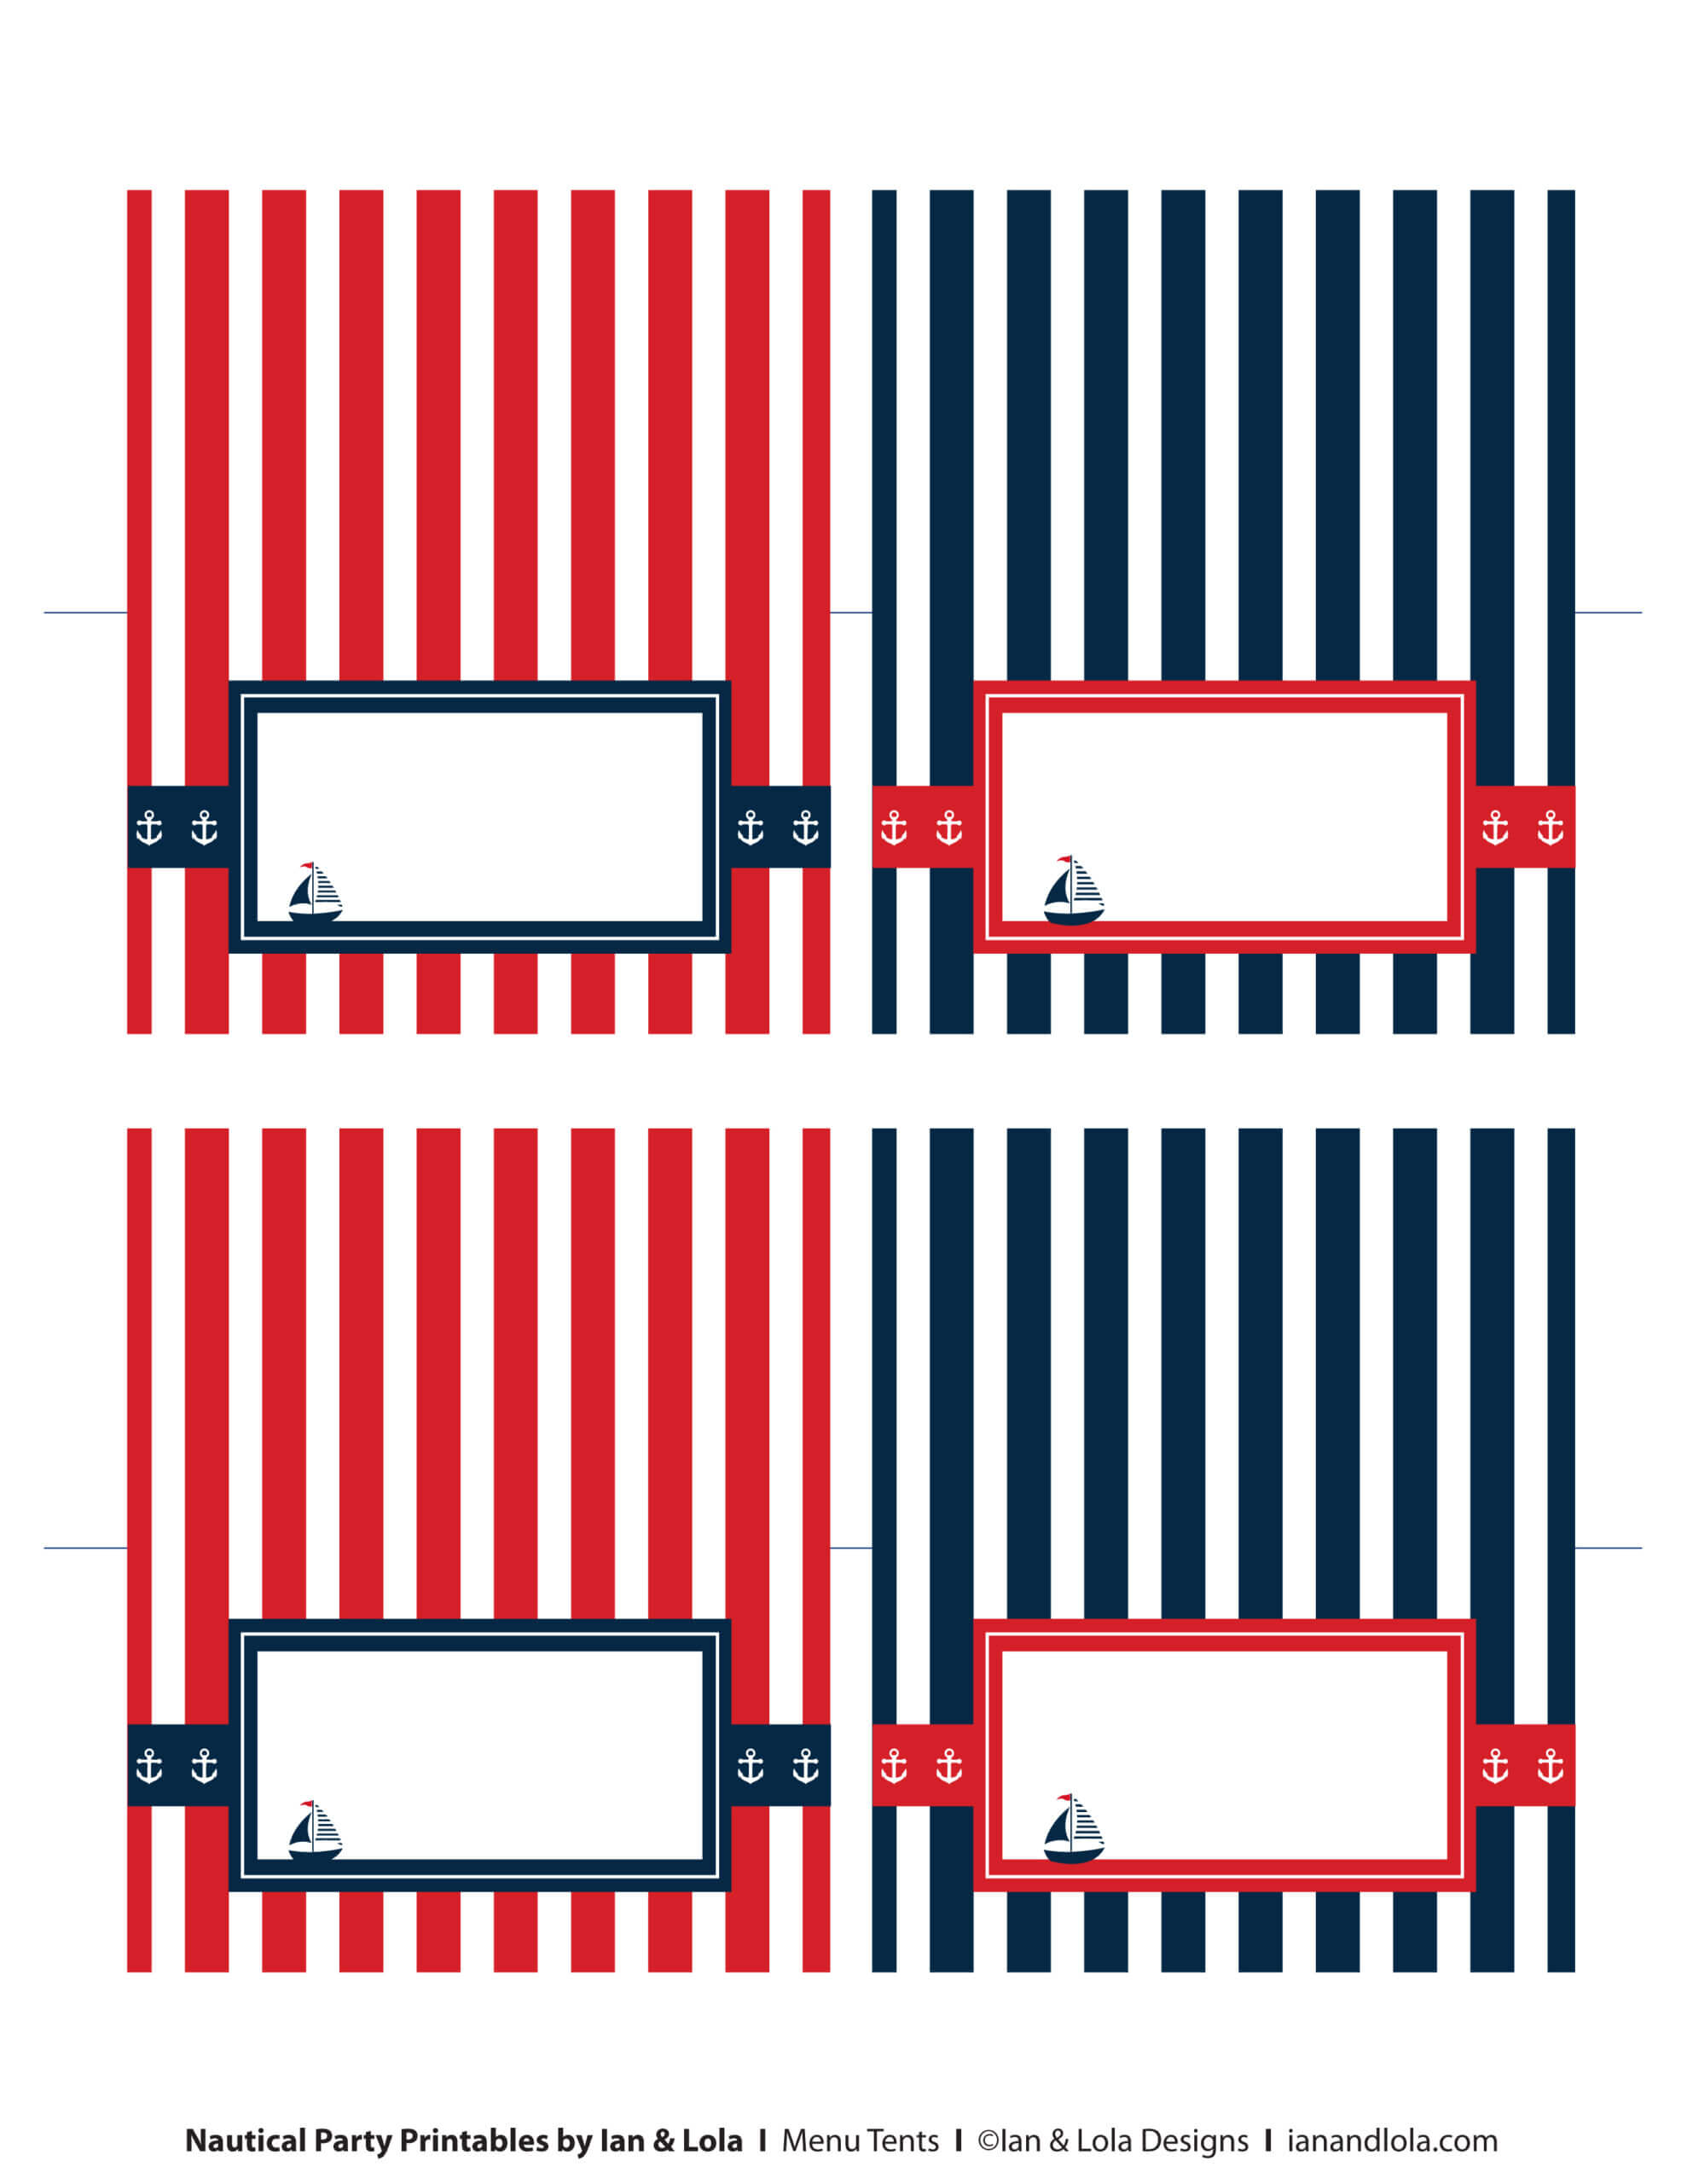 Free Nautical Party Printables From Ian & Lola Designs With Regard To Nautical Banner Template